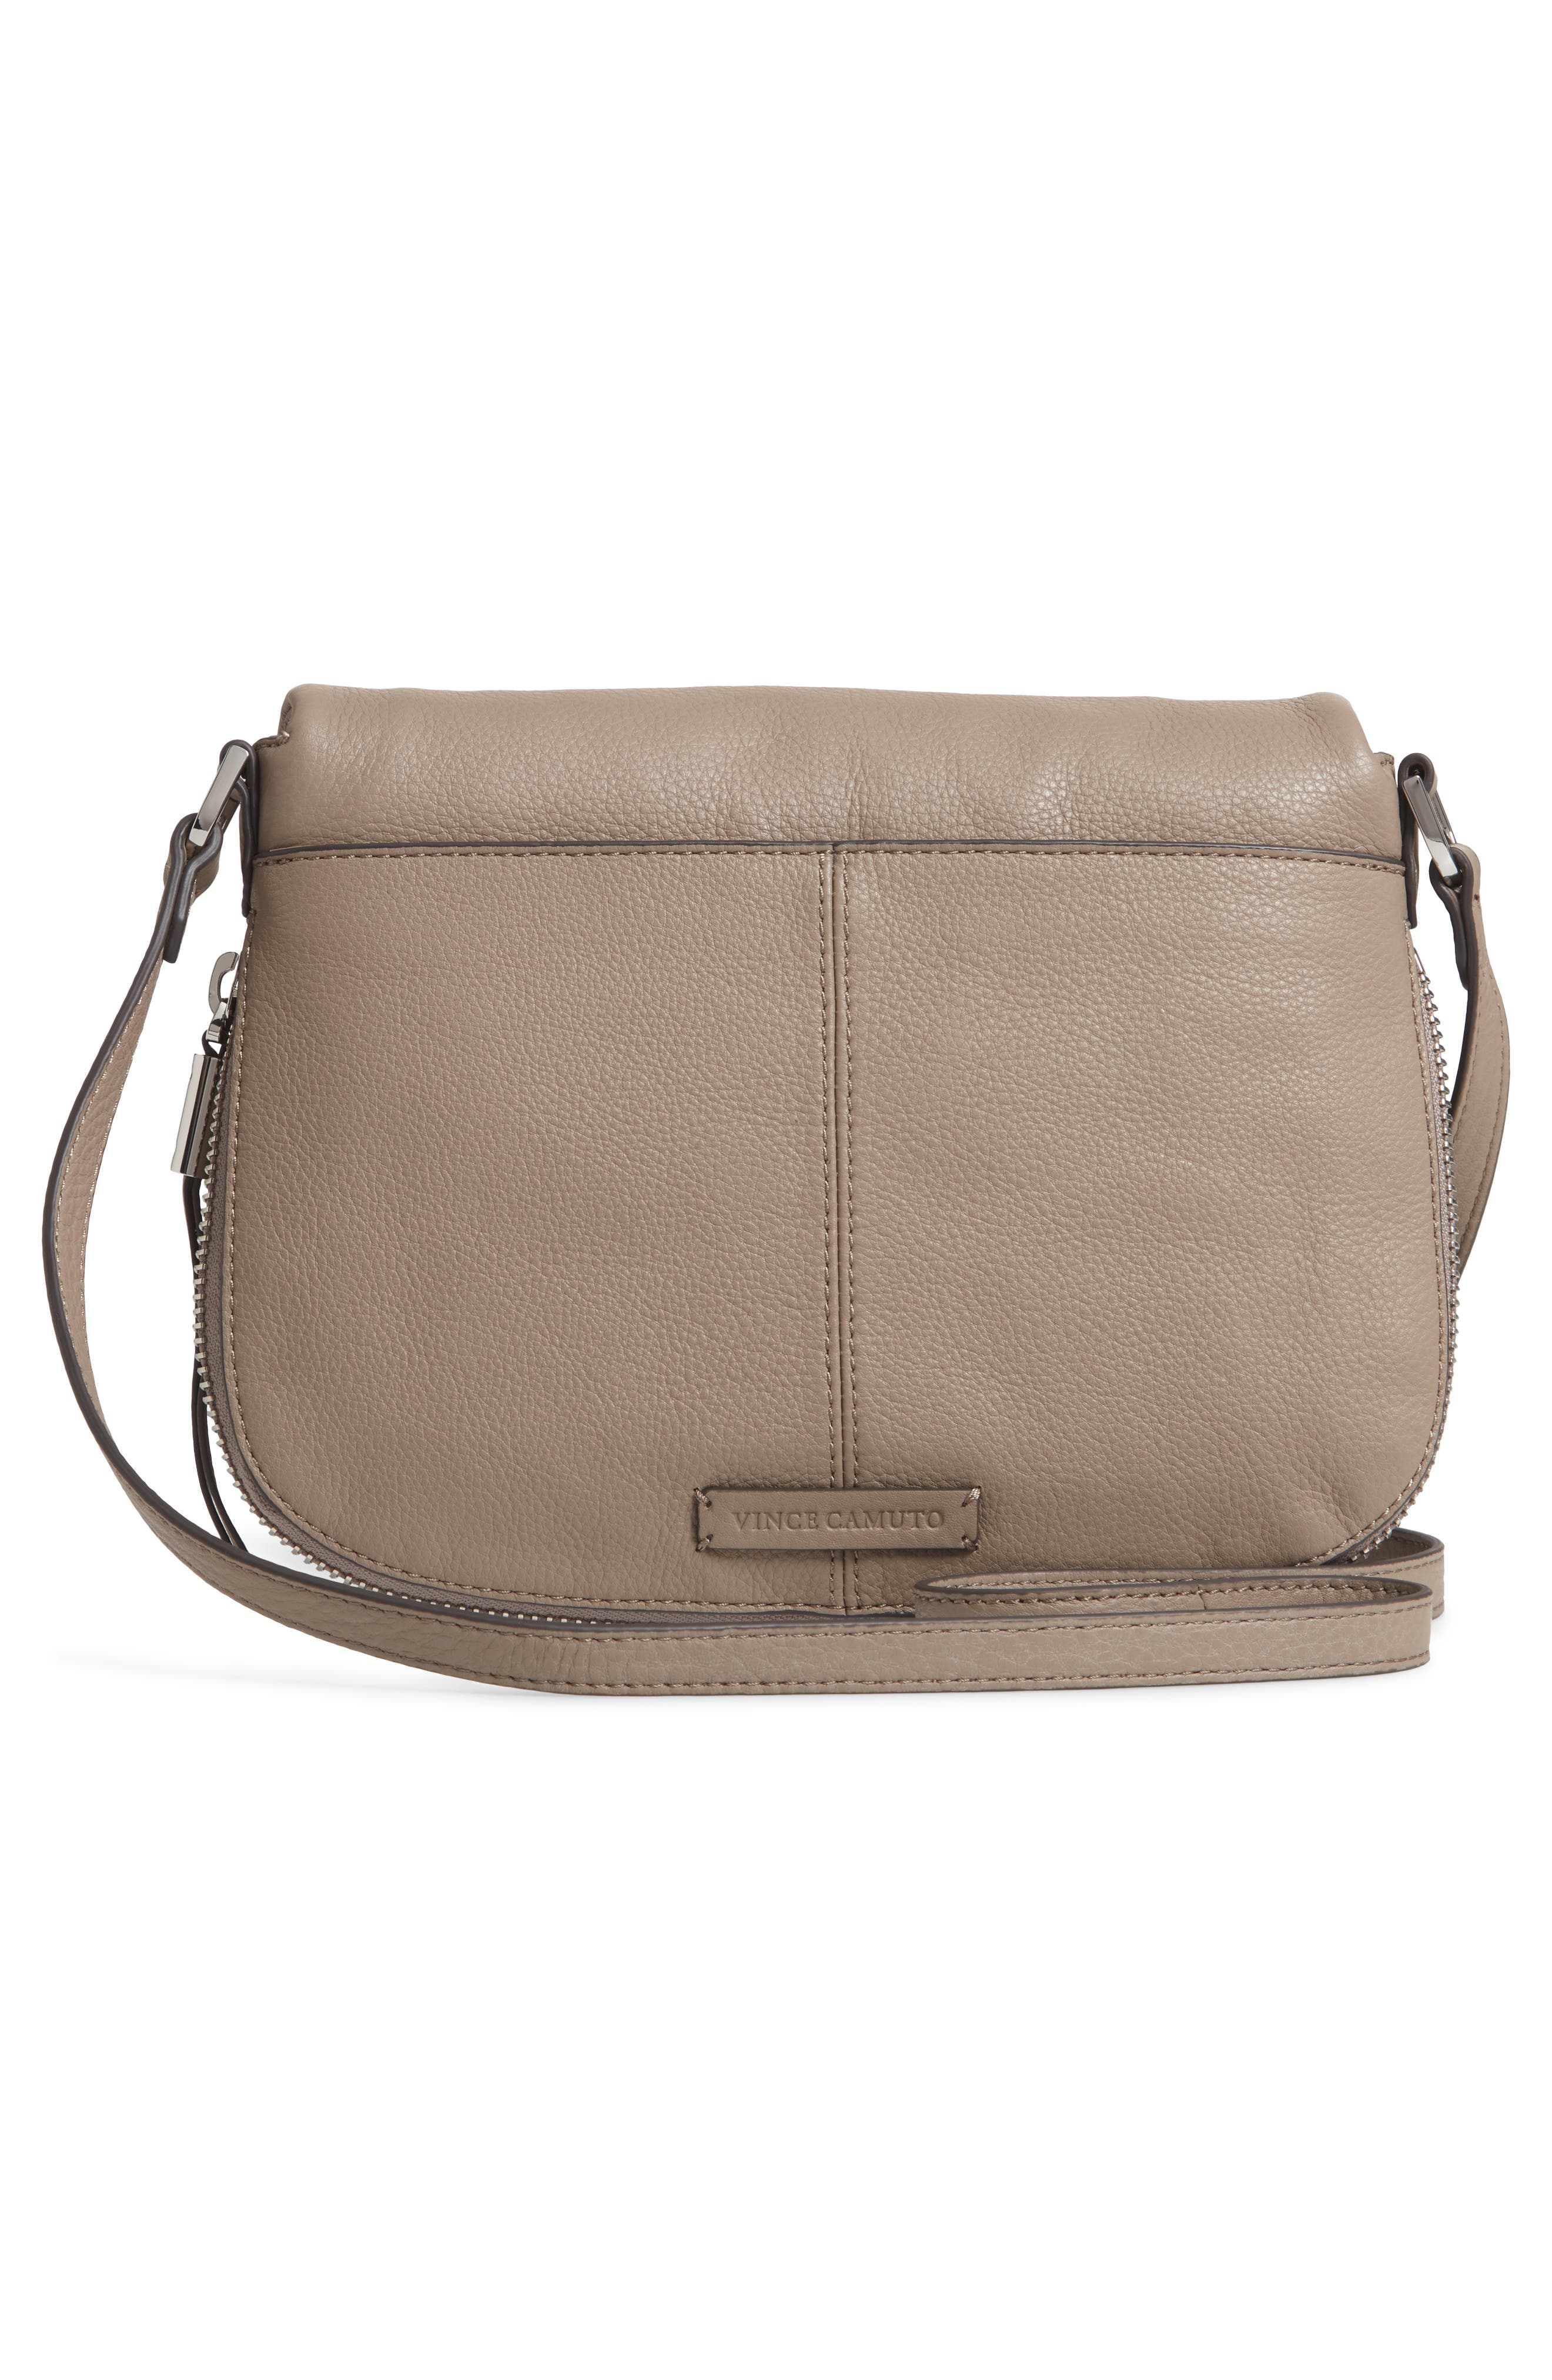 Key Leather Crossbody Bag,                             Alternate thumbnail 3, color,                             TRANQUILITY